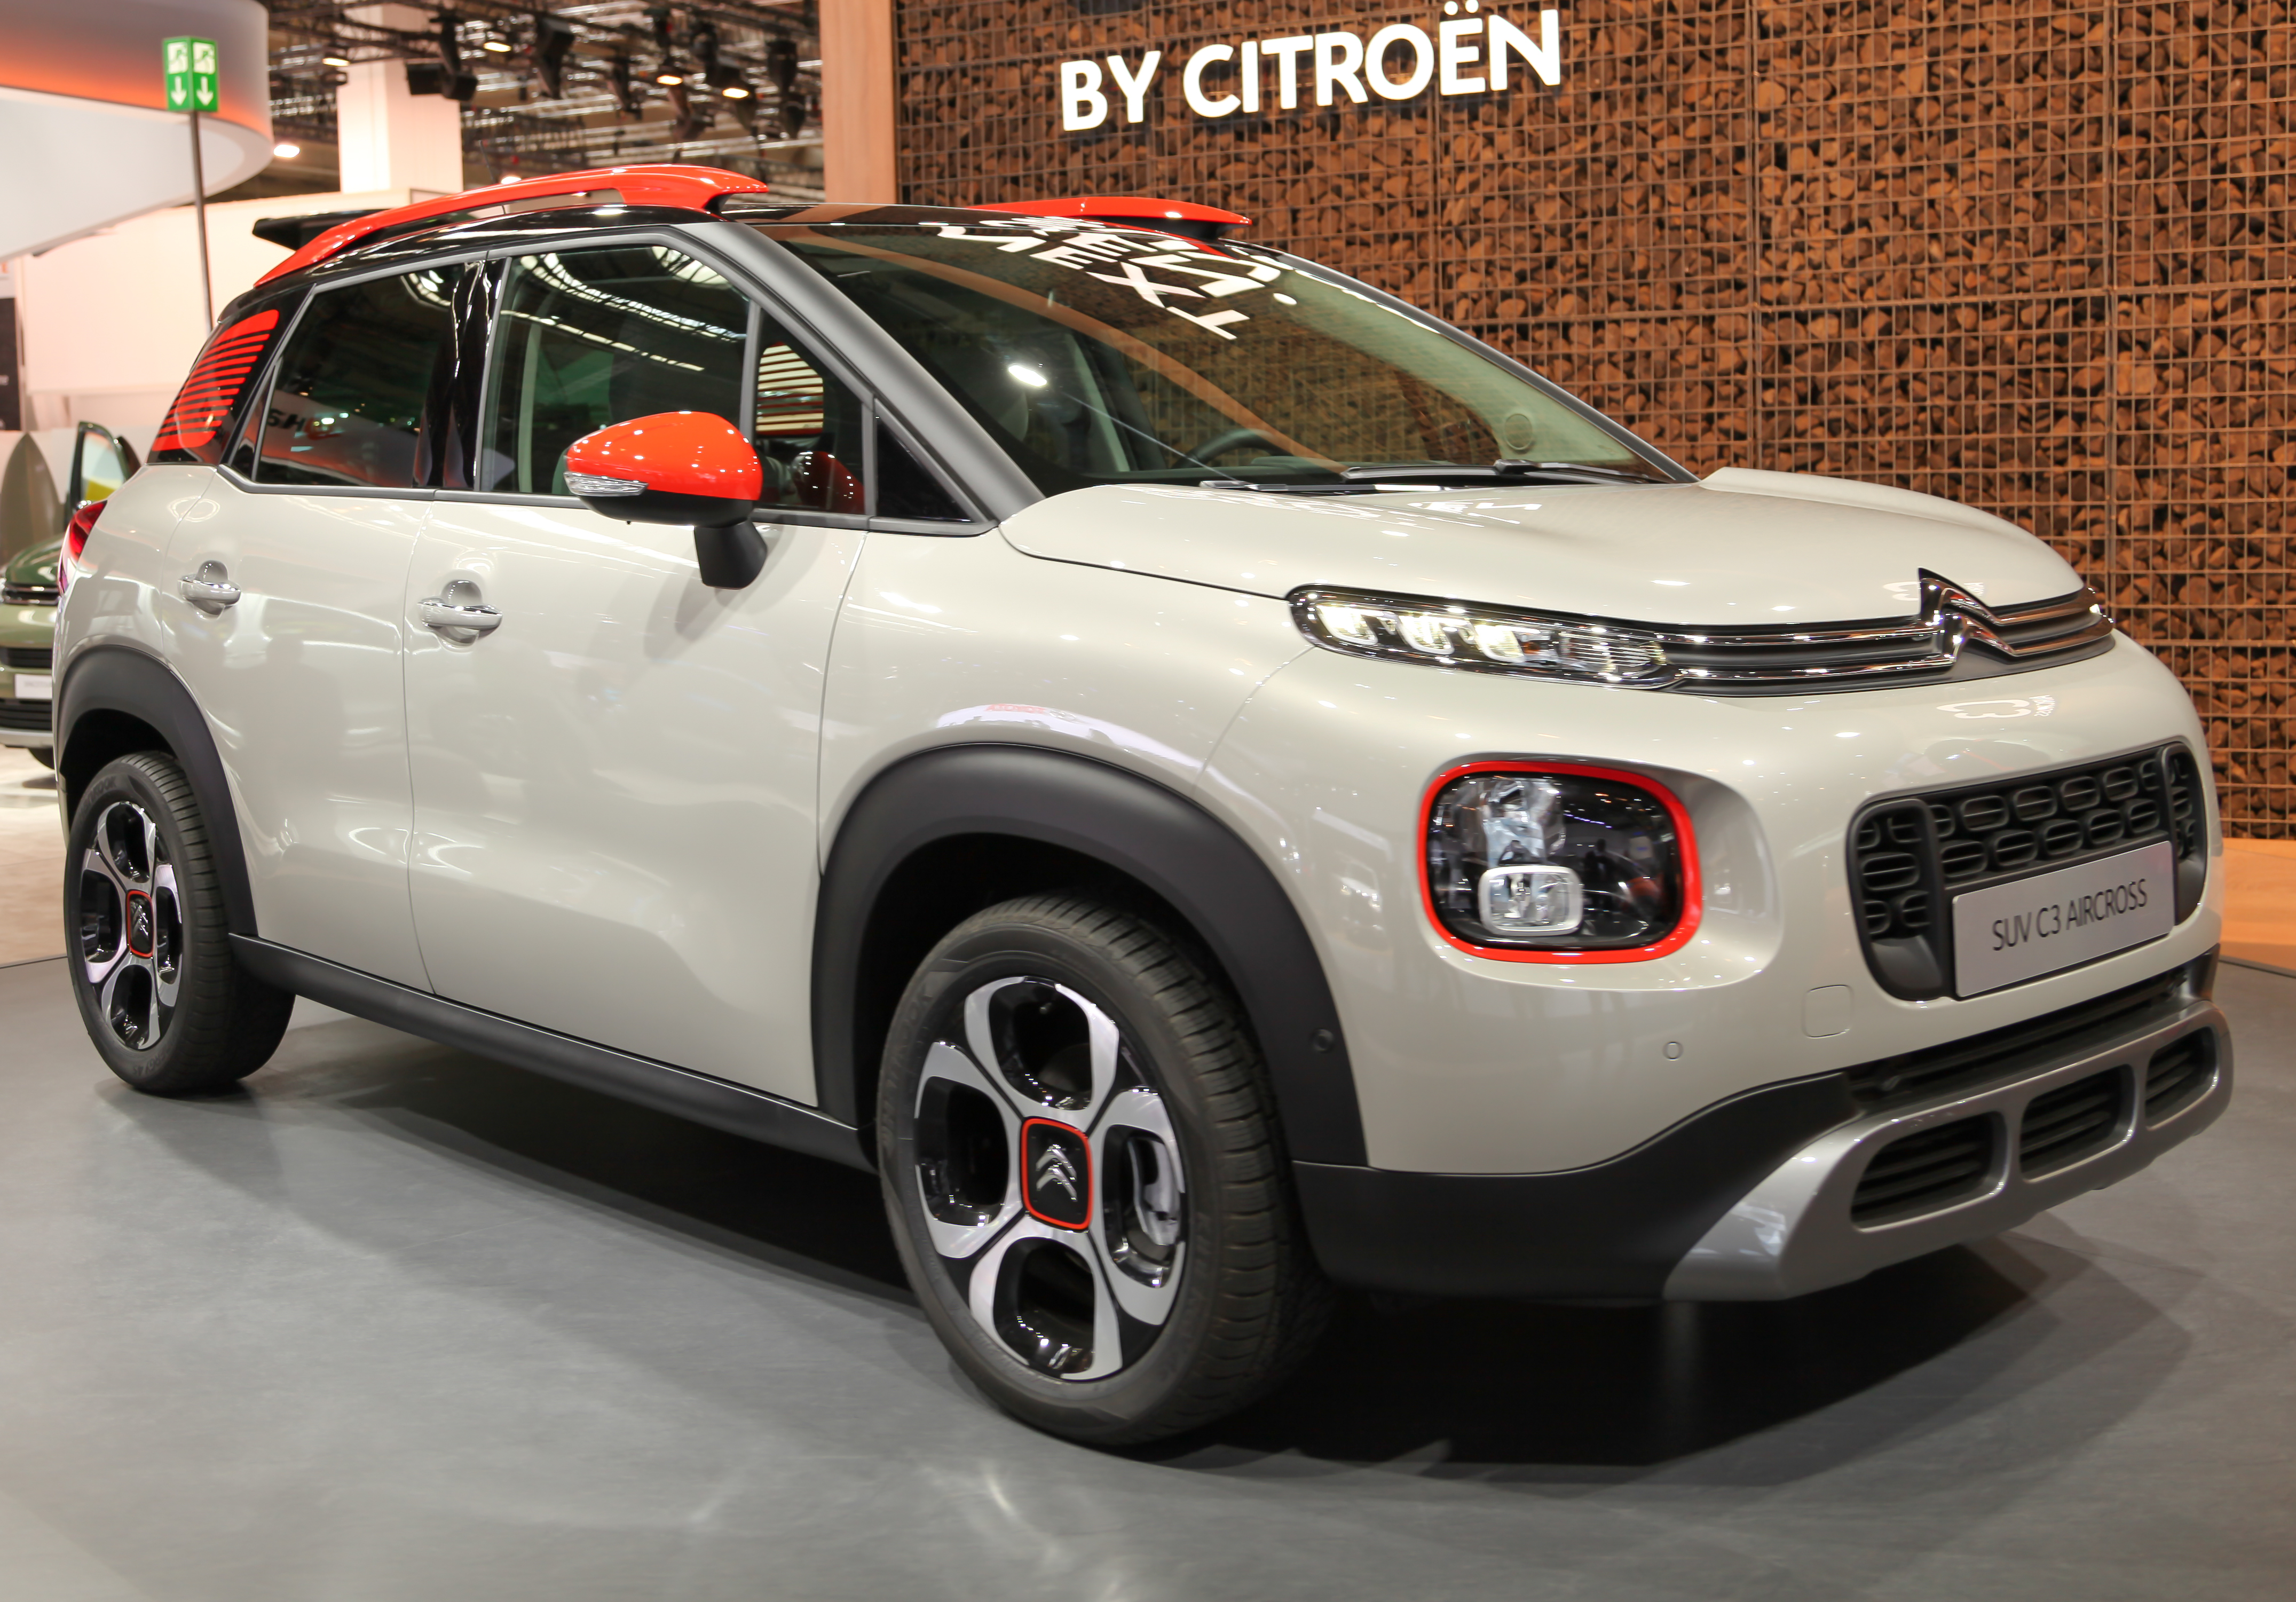 file citroen c3 aircross img wikimedia commons. Black Bedroom Furniture Sets. Home Design Ideas